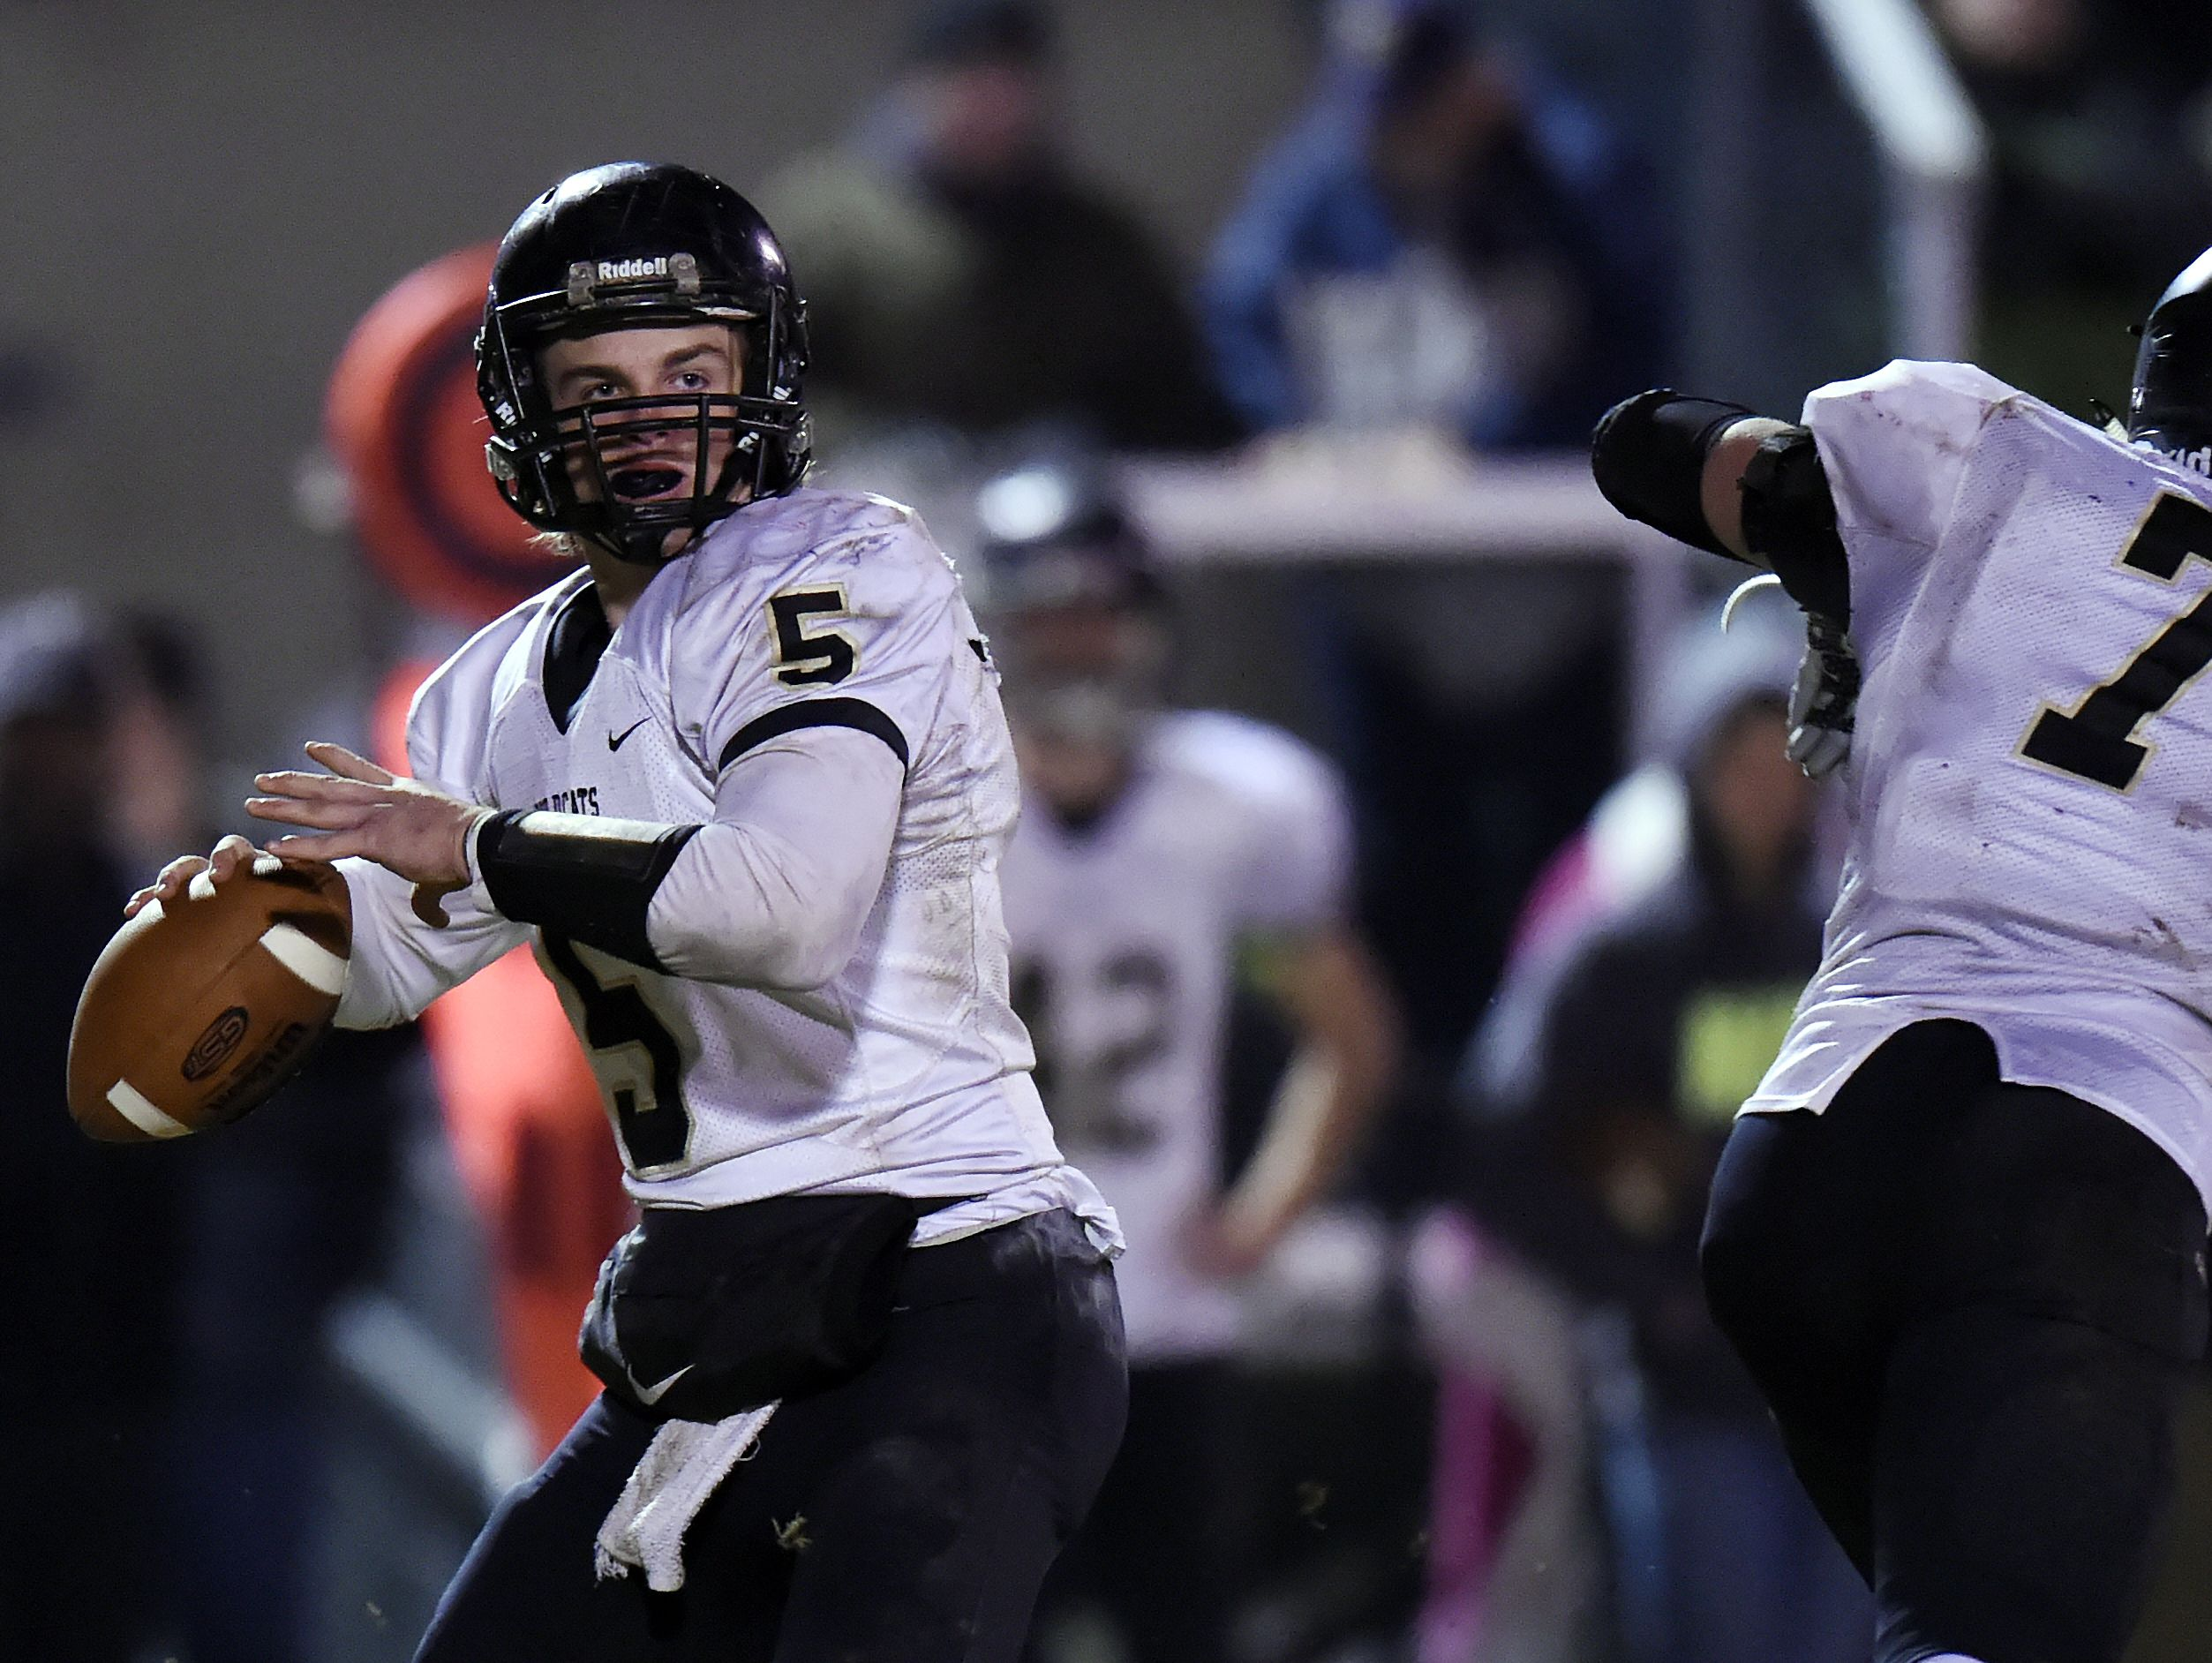 Wayne County quarterback Preston Rice (5) passes against Nashville Christian in the second half of an 1A quarterfinal playoff football game at Nashville Christian High School on Friday, Nov. 20, 2015 in Nashville, Tenn. Nashville Christian won 34-21.